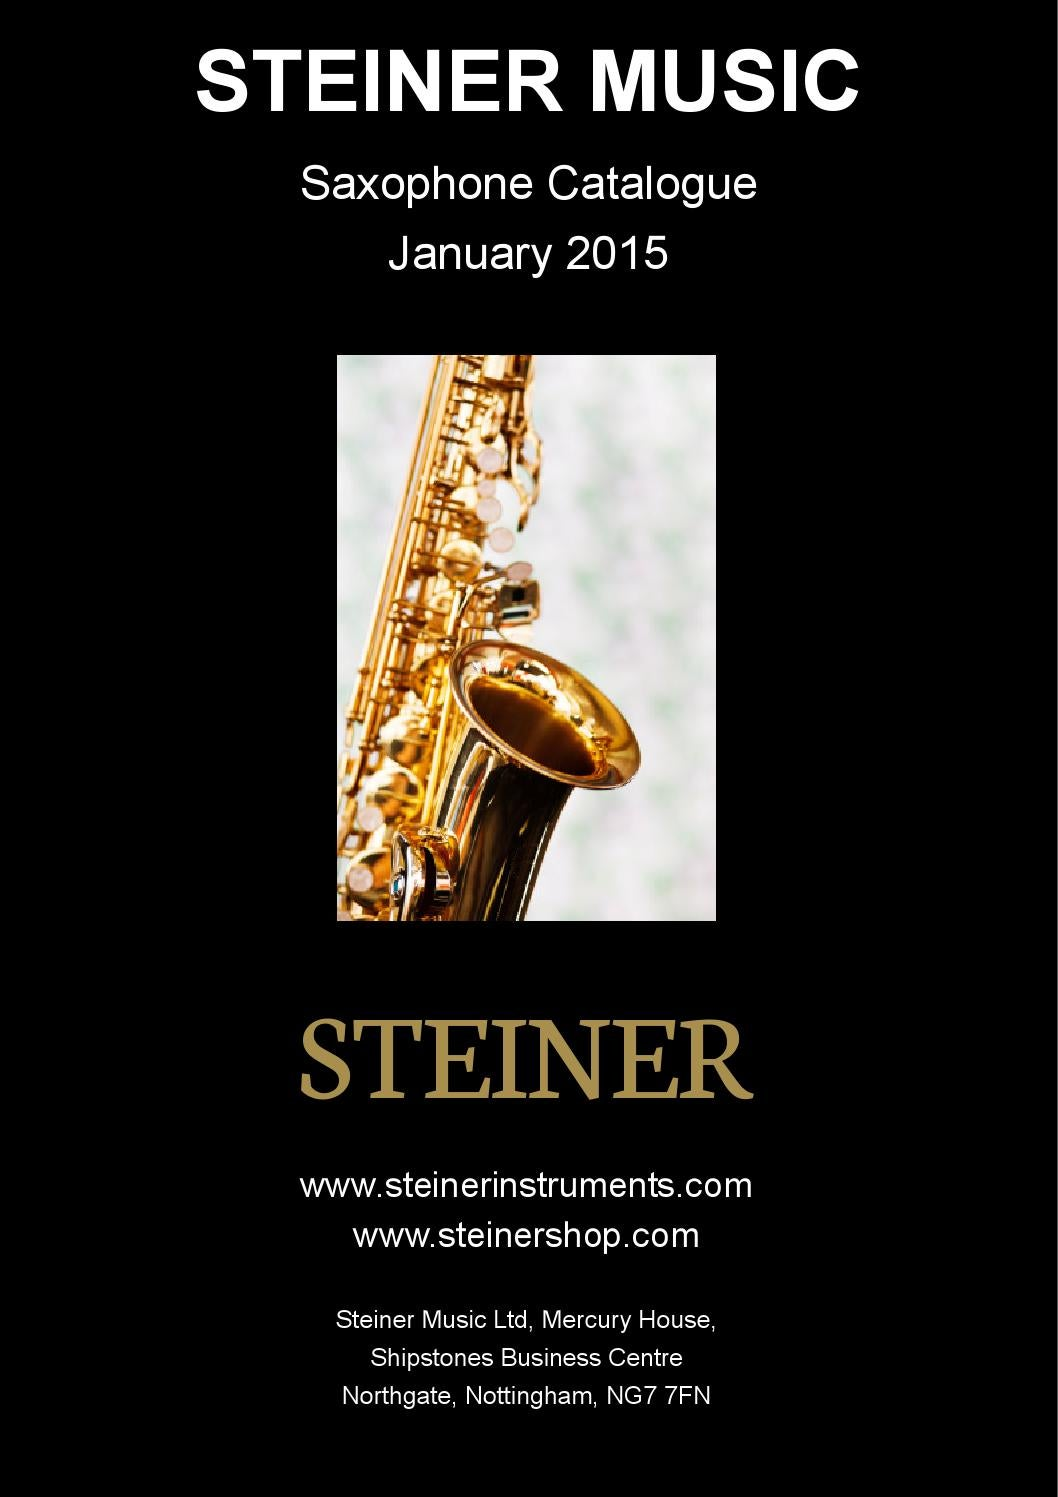 Steinershopping Steiner Saxophone Catalogue 2015 By Sopros Brasil Issuu